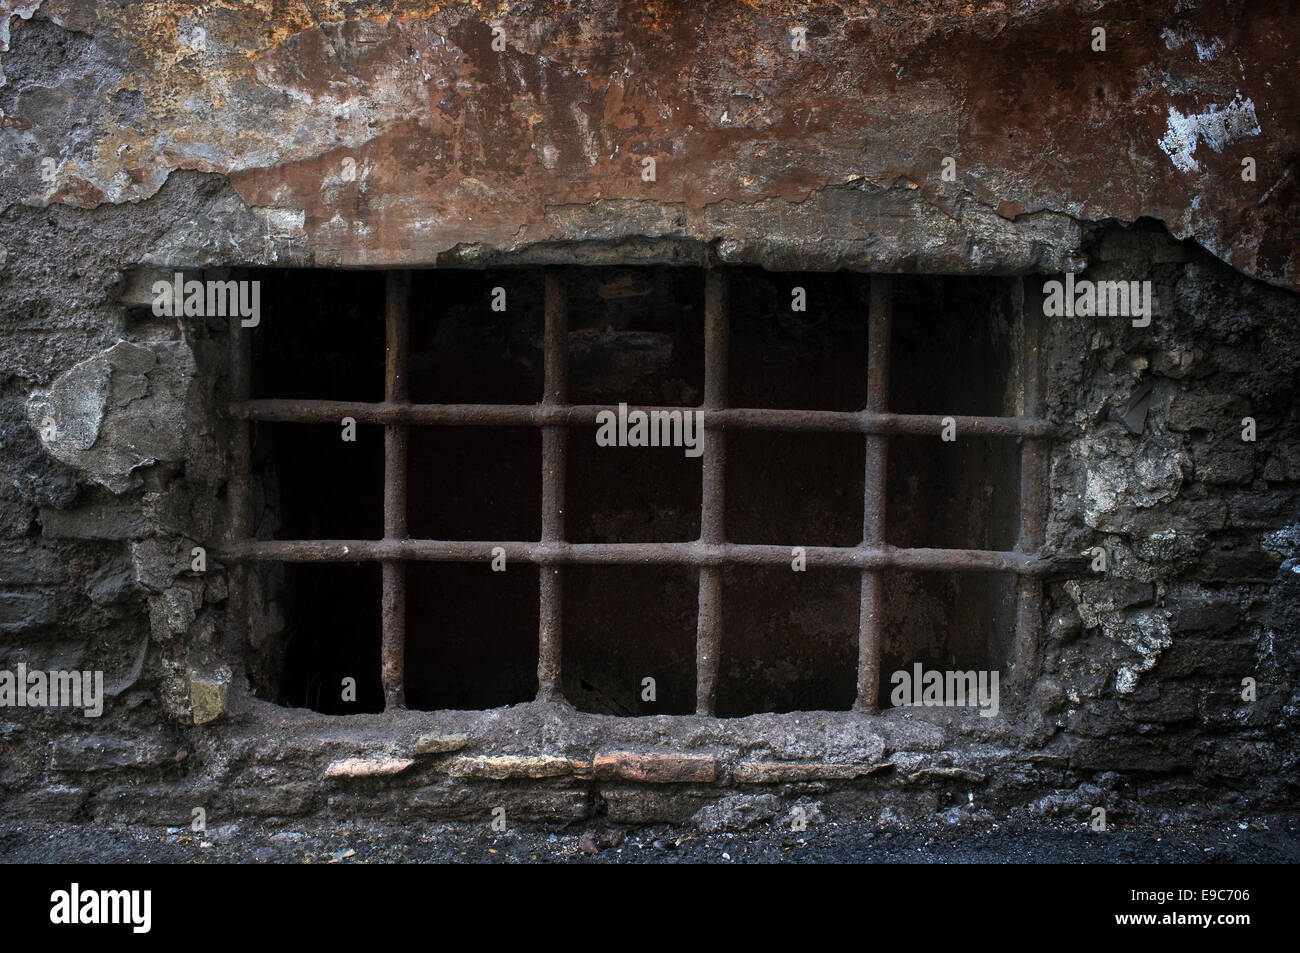 Old creepy cellar window with bars. - Stock Image